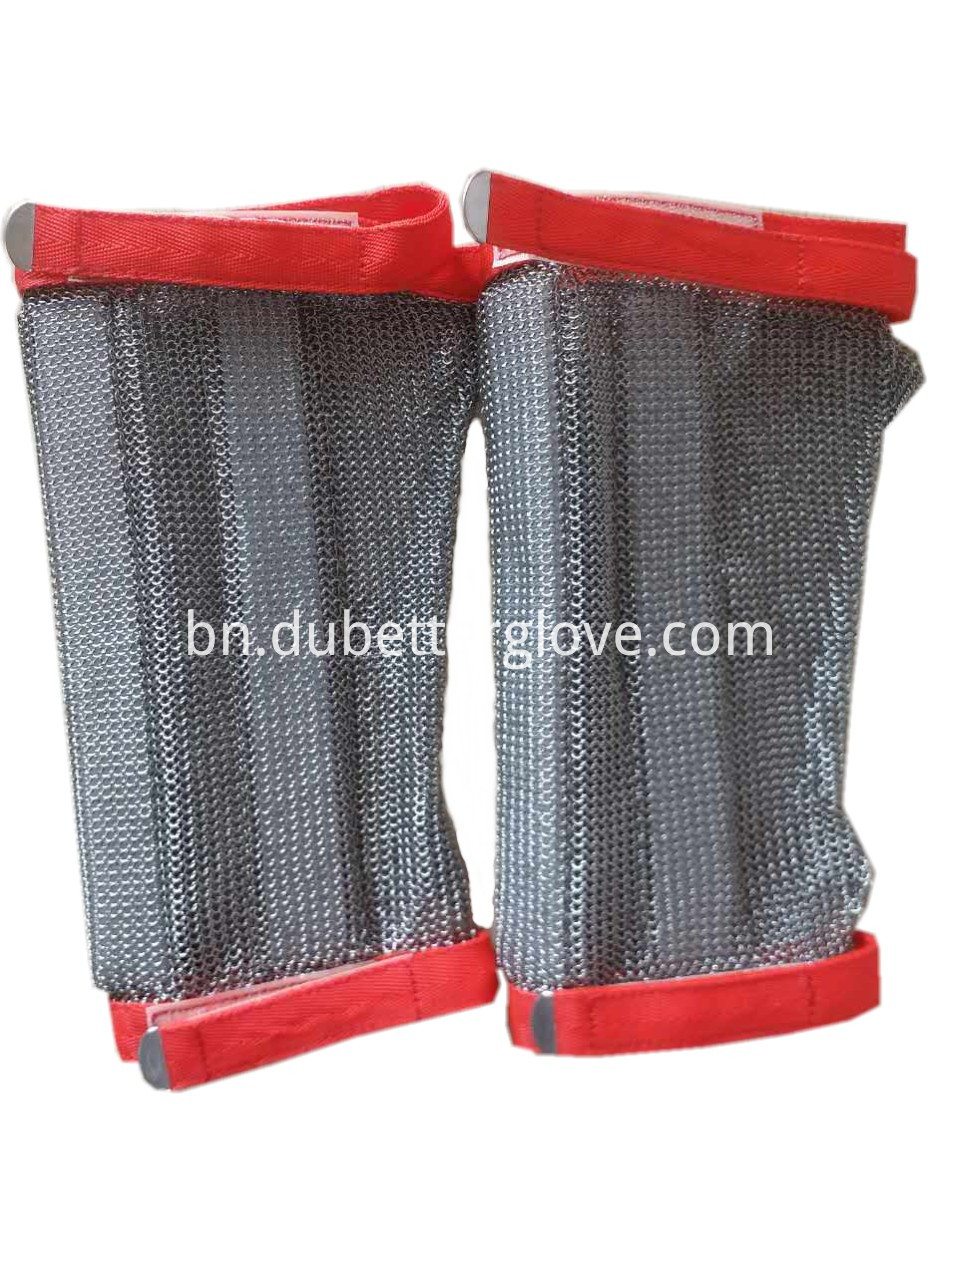 Dubetter Metal Mesh Arm Guard